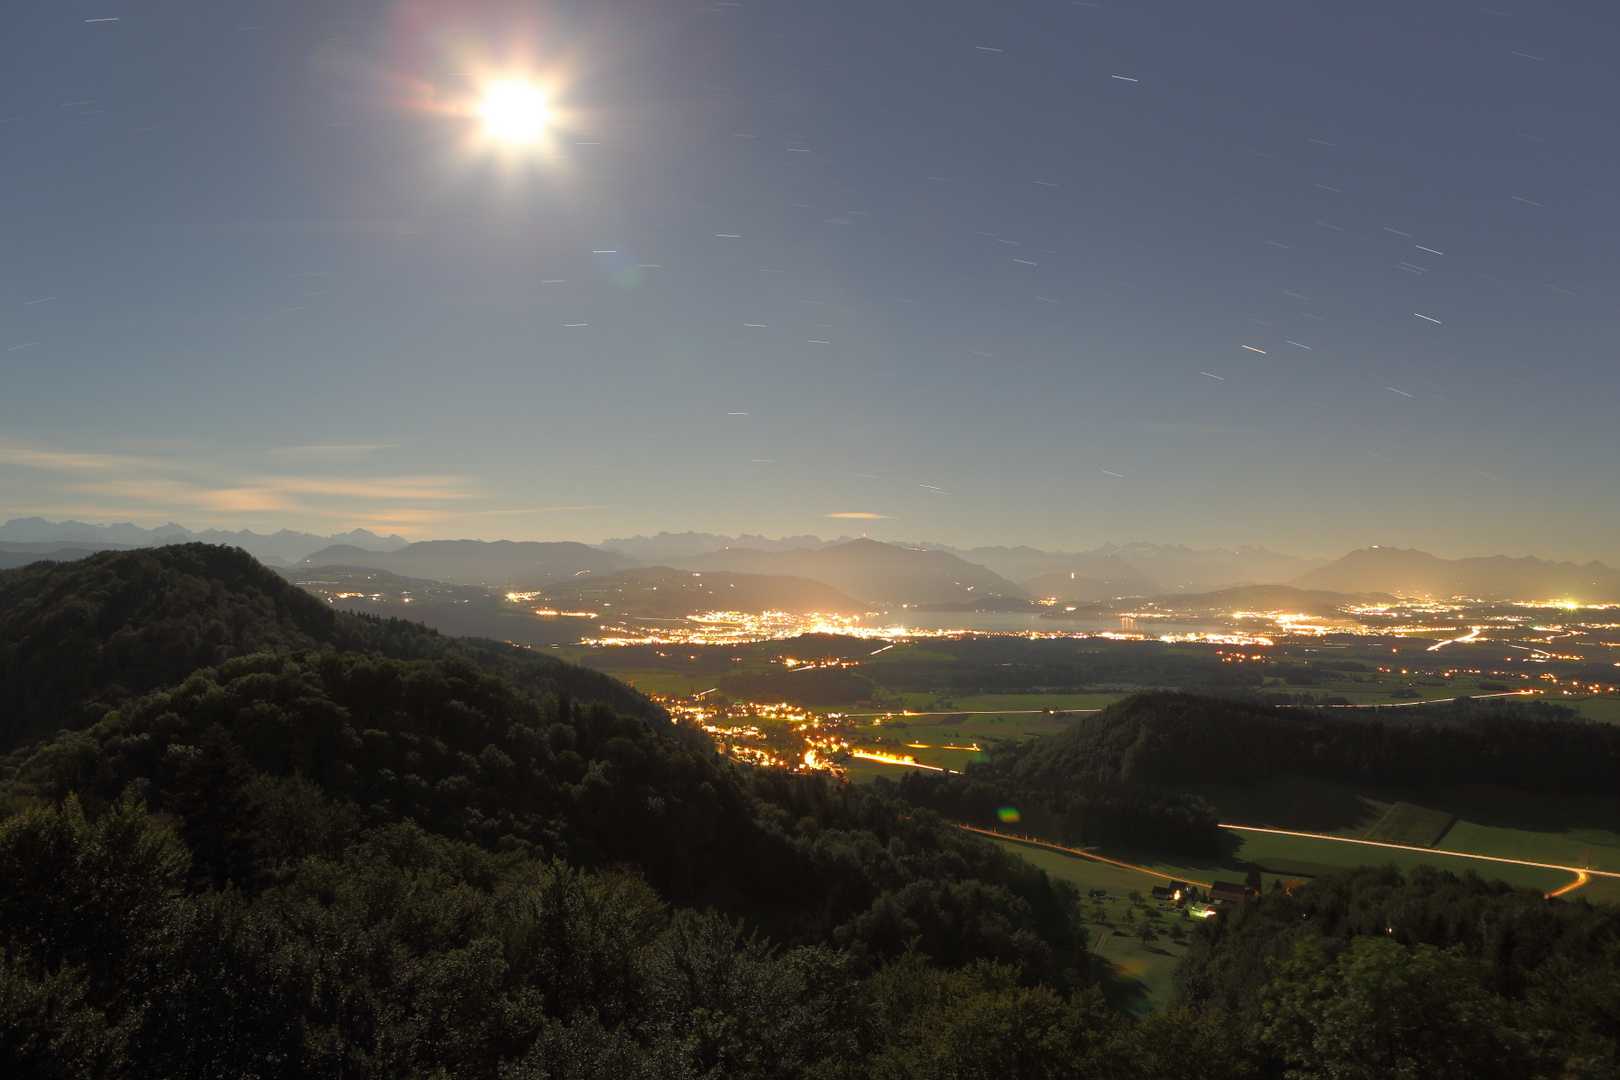 night view with moonshine and stars from Albispass on Zug and mountains (5 minutes exposure)